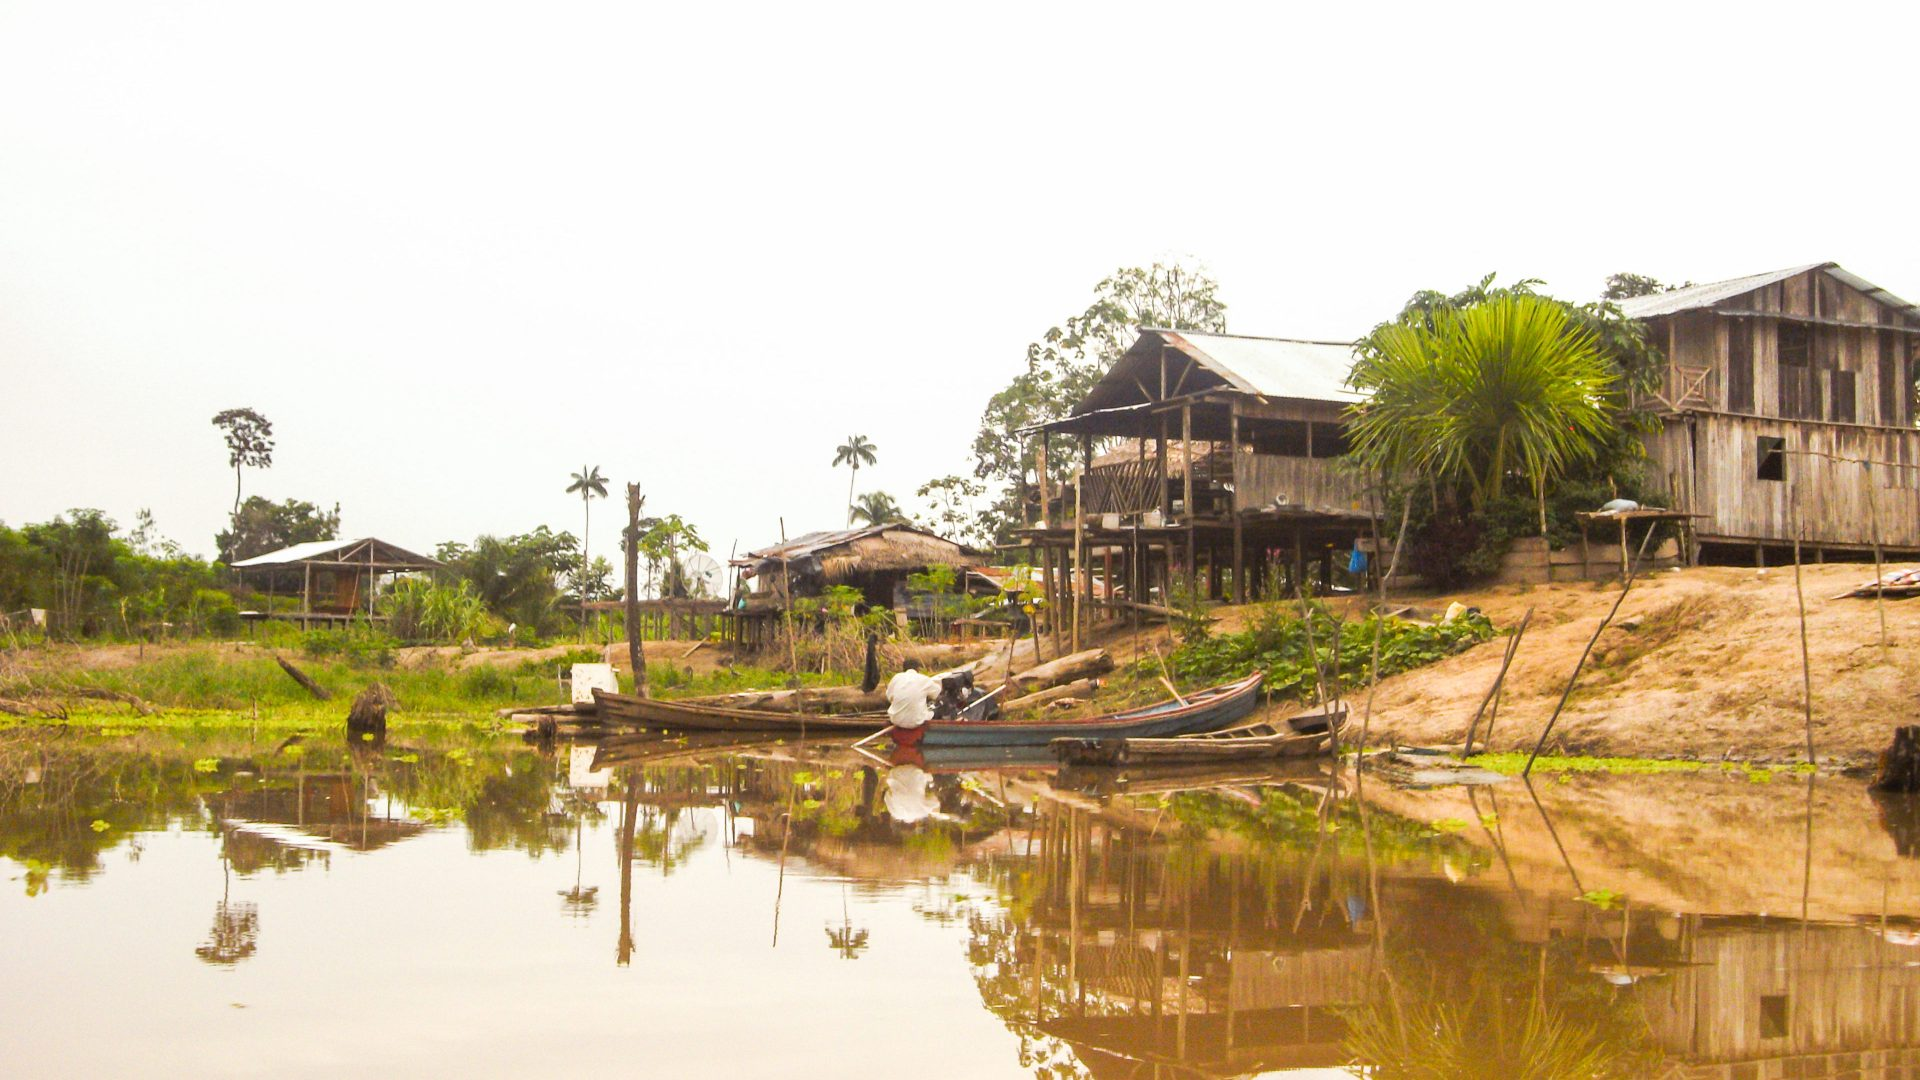 A man on a small canoe can be seen in the river in front of a house in the Amazon jungle.